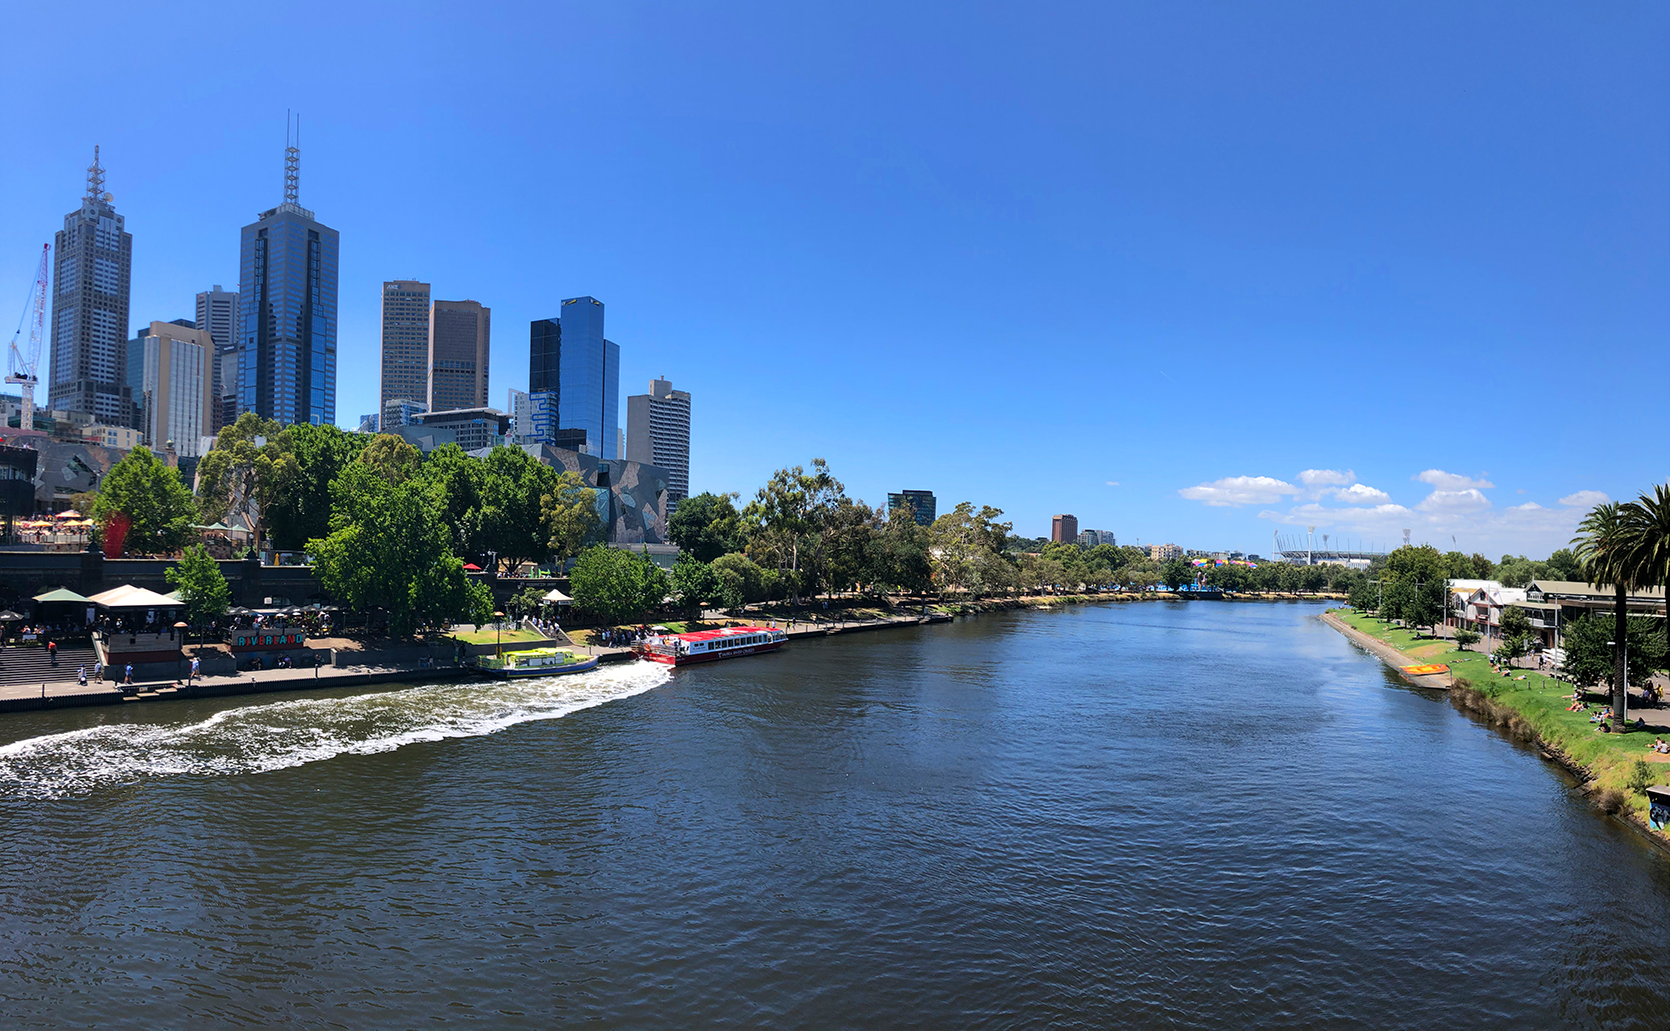 David's shot of the Yarra River earlier today